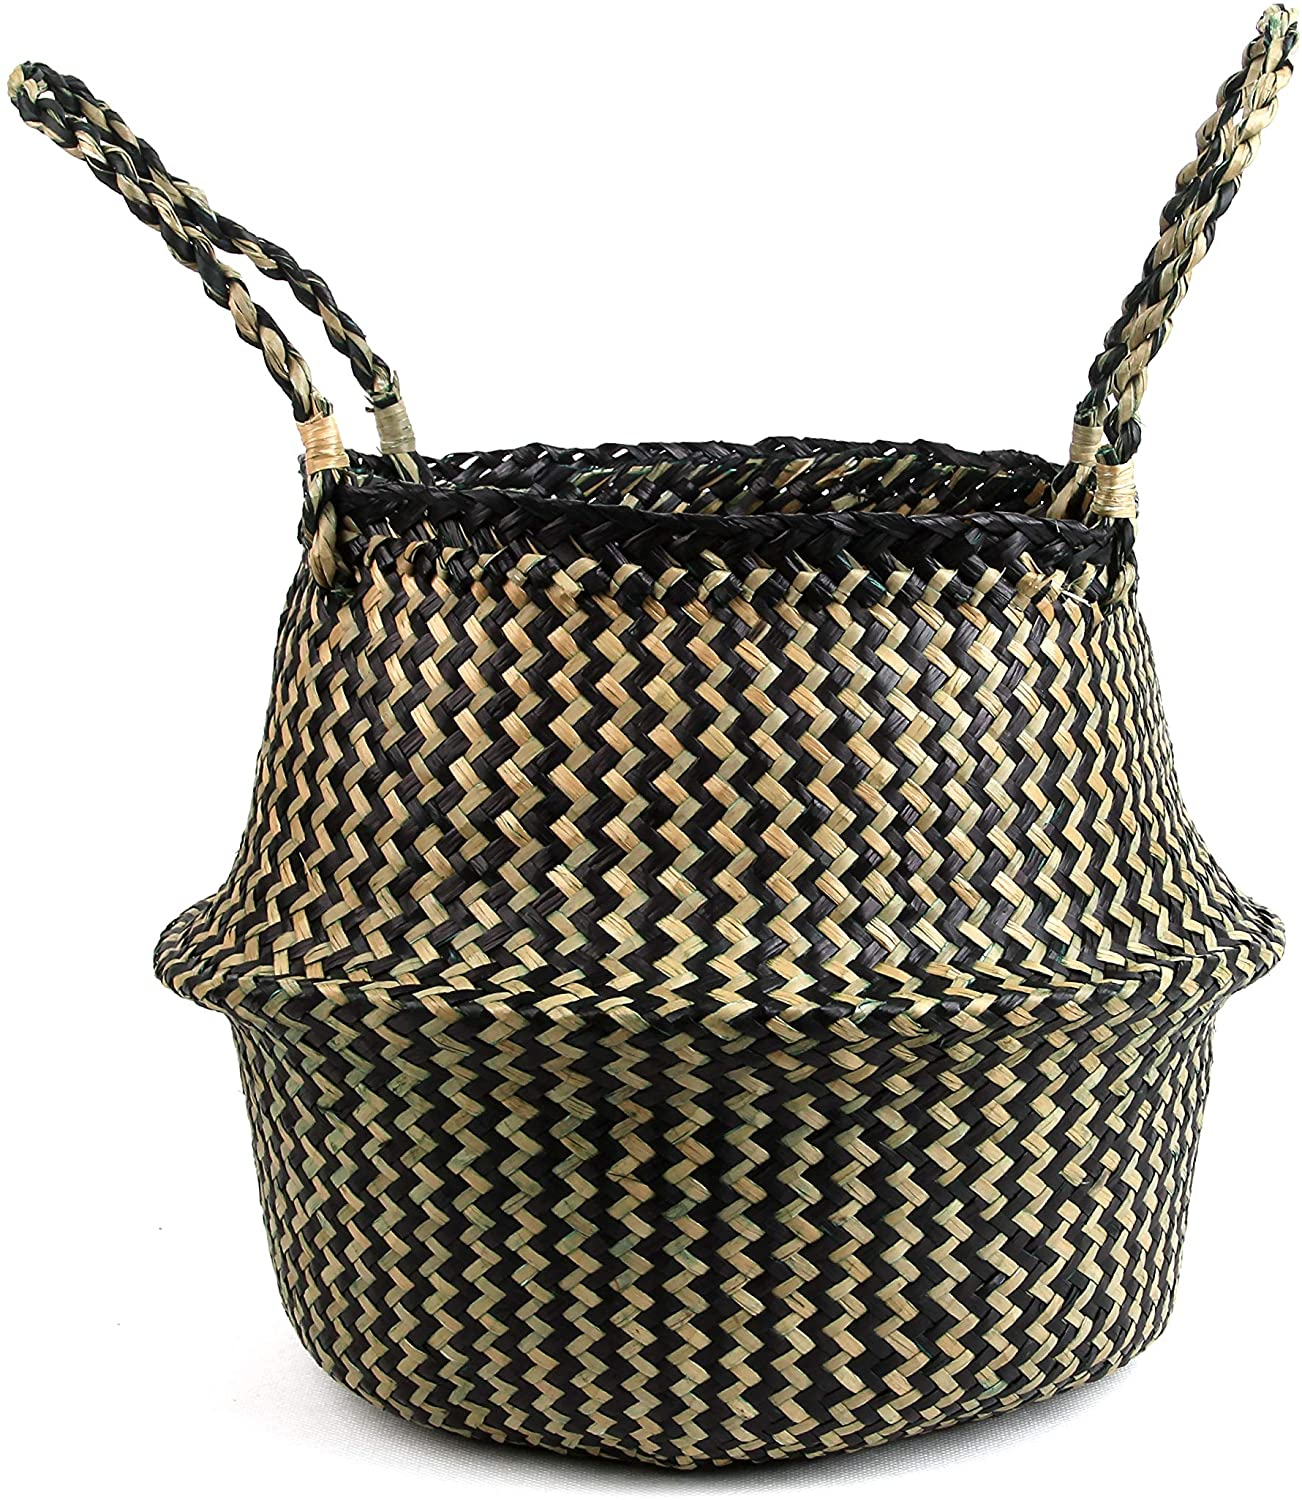 BlueMake Woven Seagrass Belly Basket for Storage Plant Pot Basket and Laundry, Picnic and Grocery Basket (Small, Black Strips)